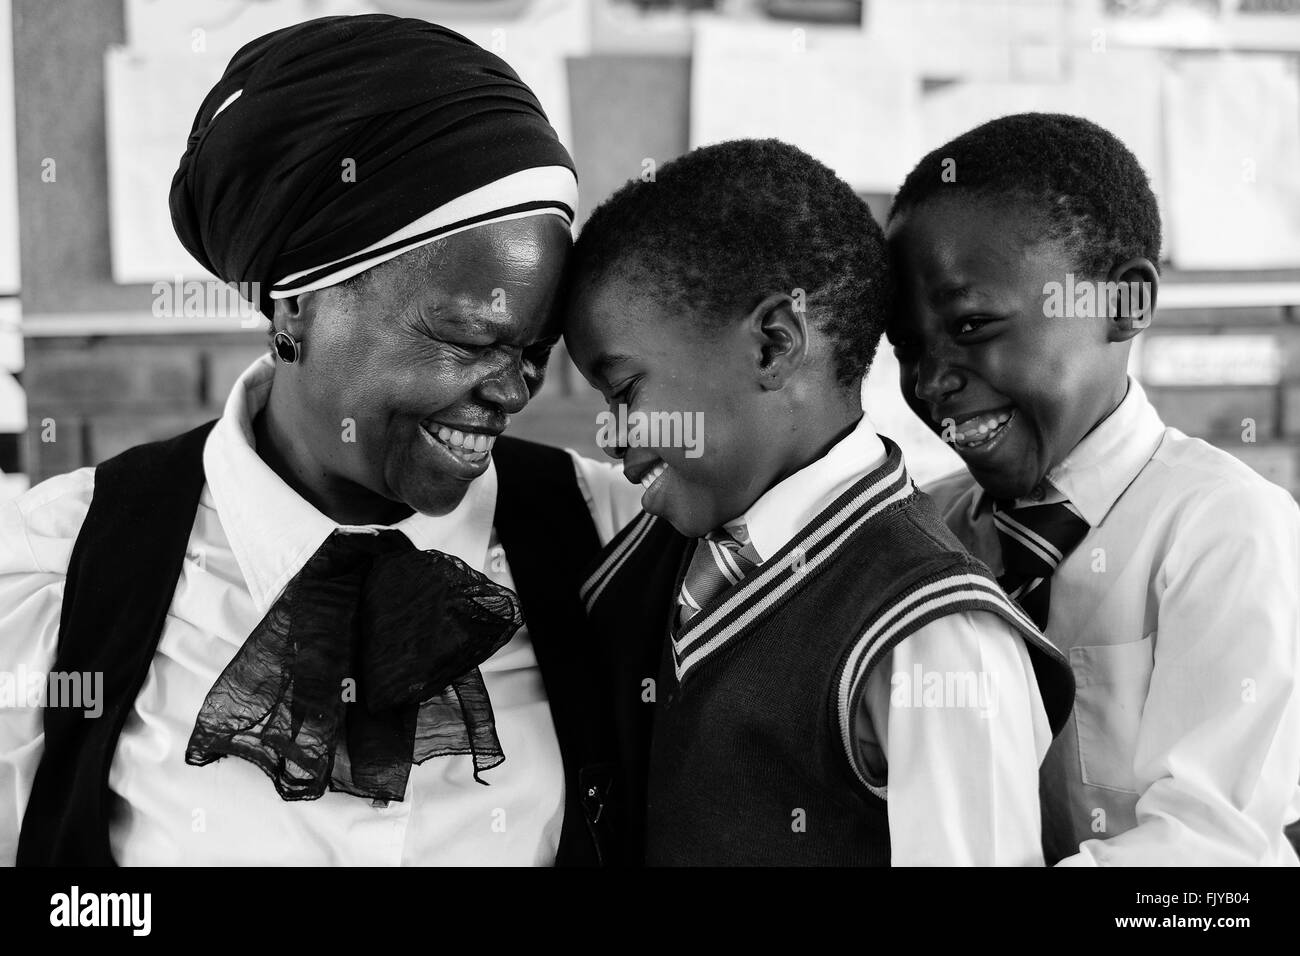 Johannesburg, Gauteng, South Africa. 30th Nov, 2015. 20 years after democracy most black children in South Africa - Stock Image